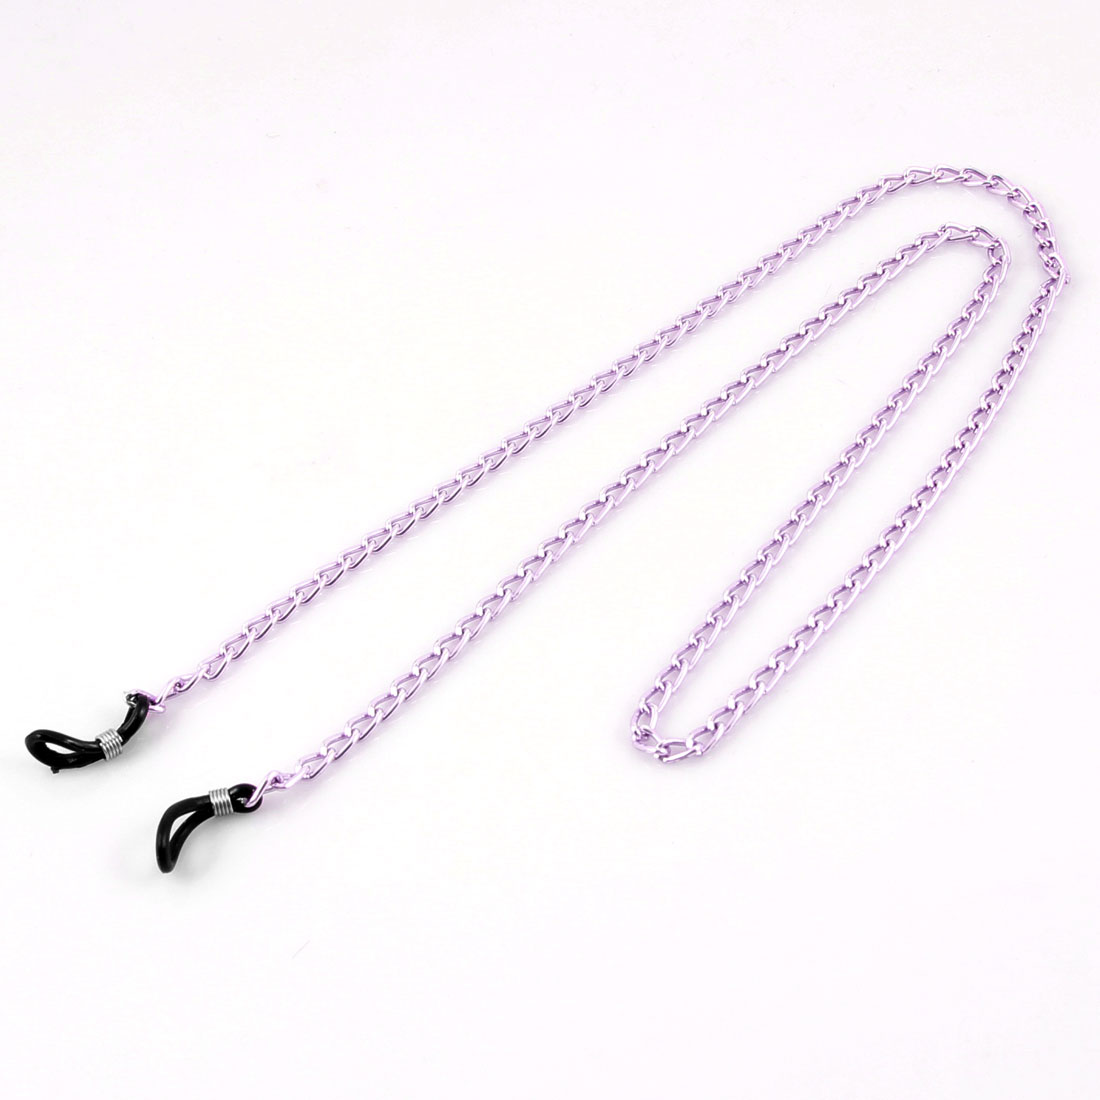 Adjustable Rubber Loop Tip Pink Alloy Twisted Chain Glasses Retainer